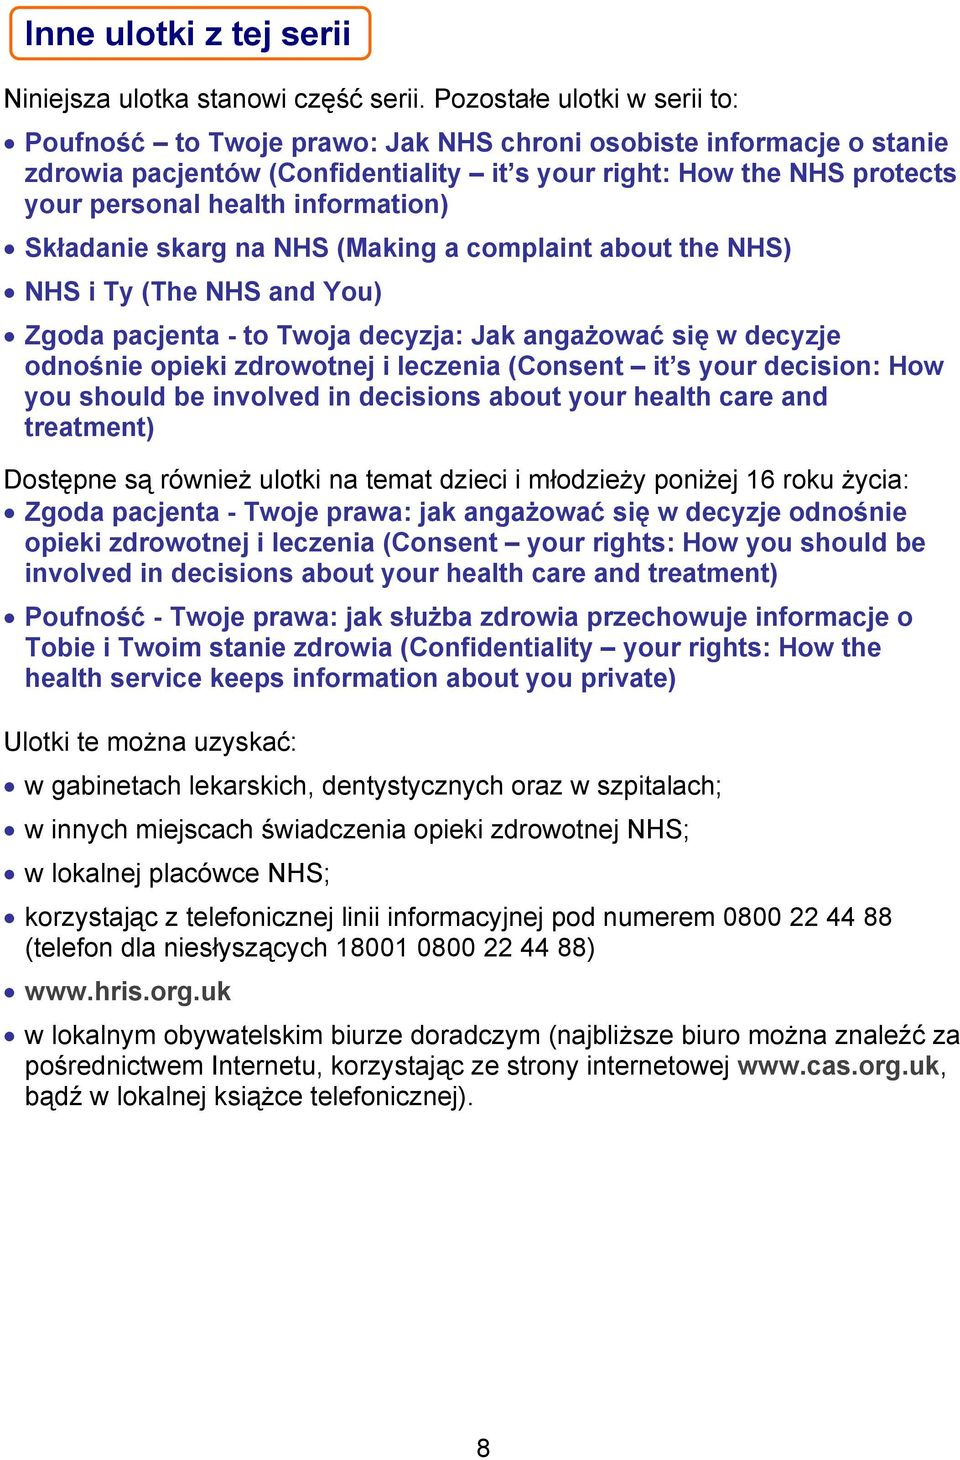 information) Składanie skarg na NHS (Making a complaint about the NHS) NHS i Ty (The NHS and You) Zgoda pacjenta - to Twoja decyzja: Jak angażować się w decyzje odnośnie opieki zdrowotnej i leczenia